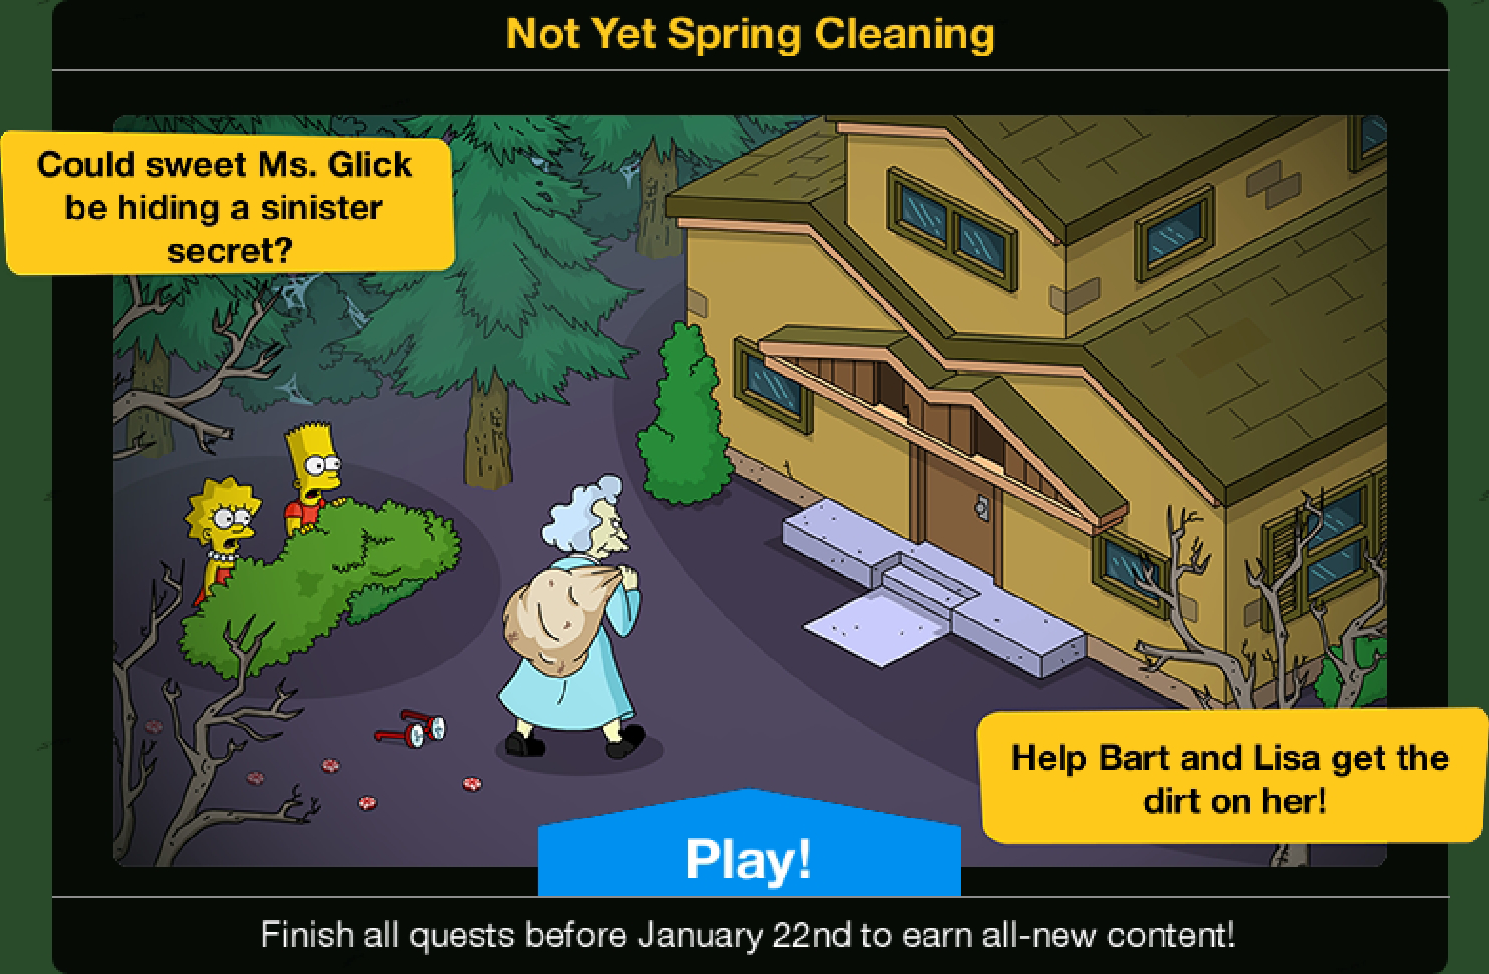 Not_Yet_Spring_Cleaning_Guide.png